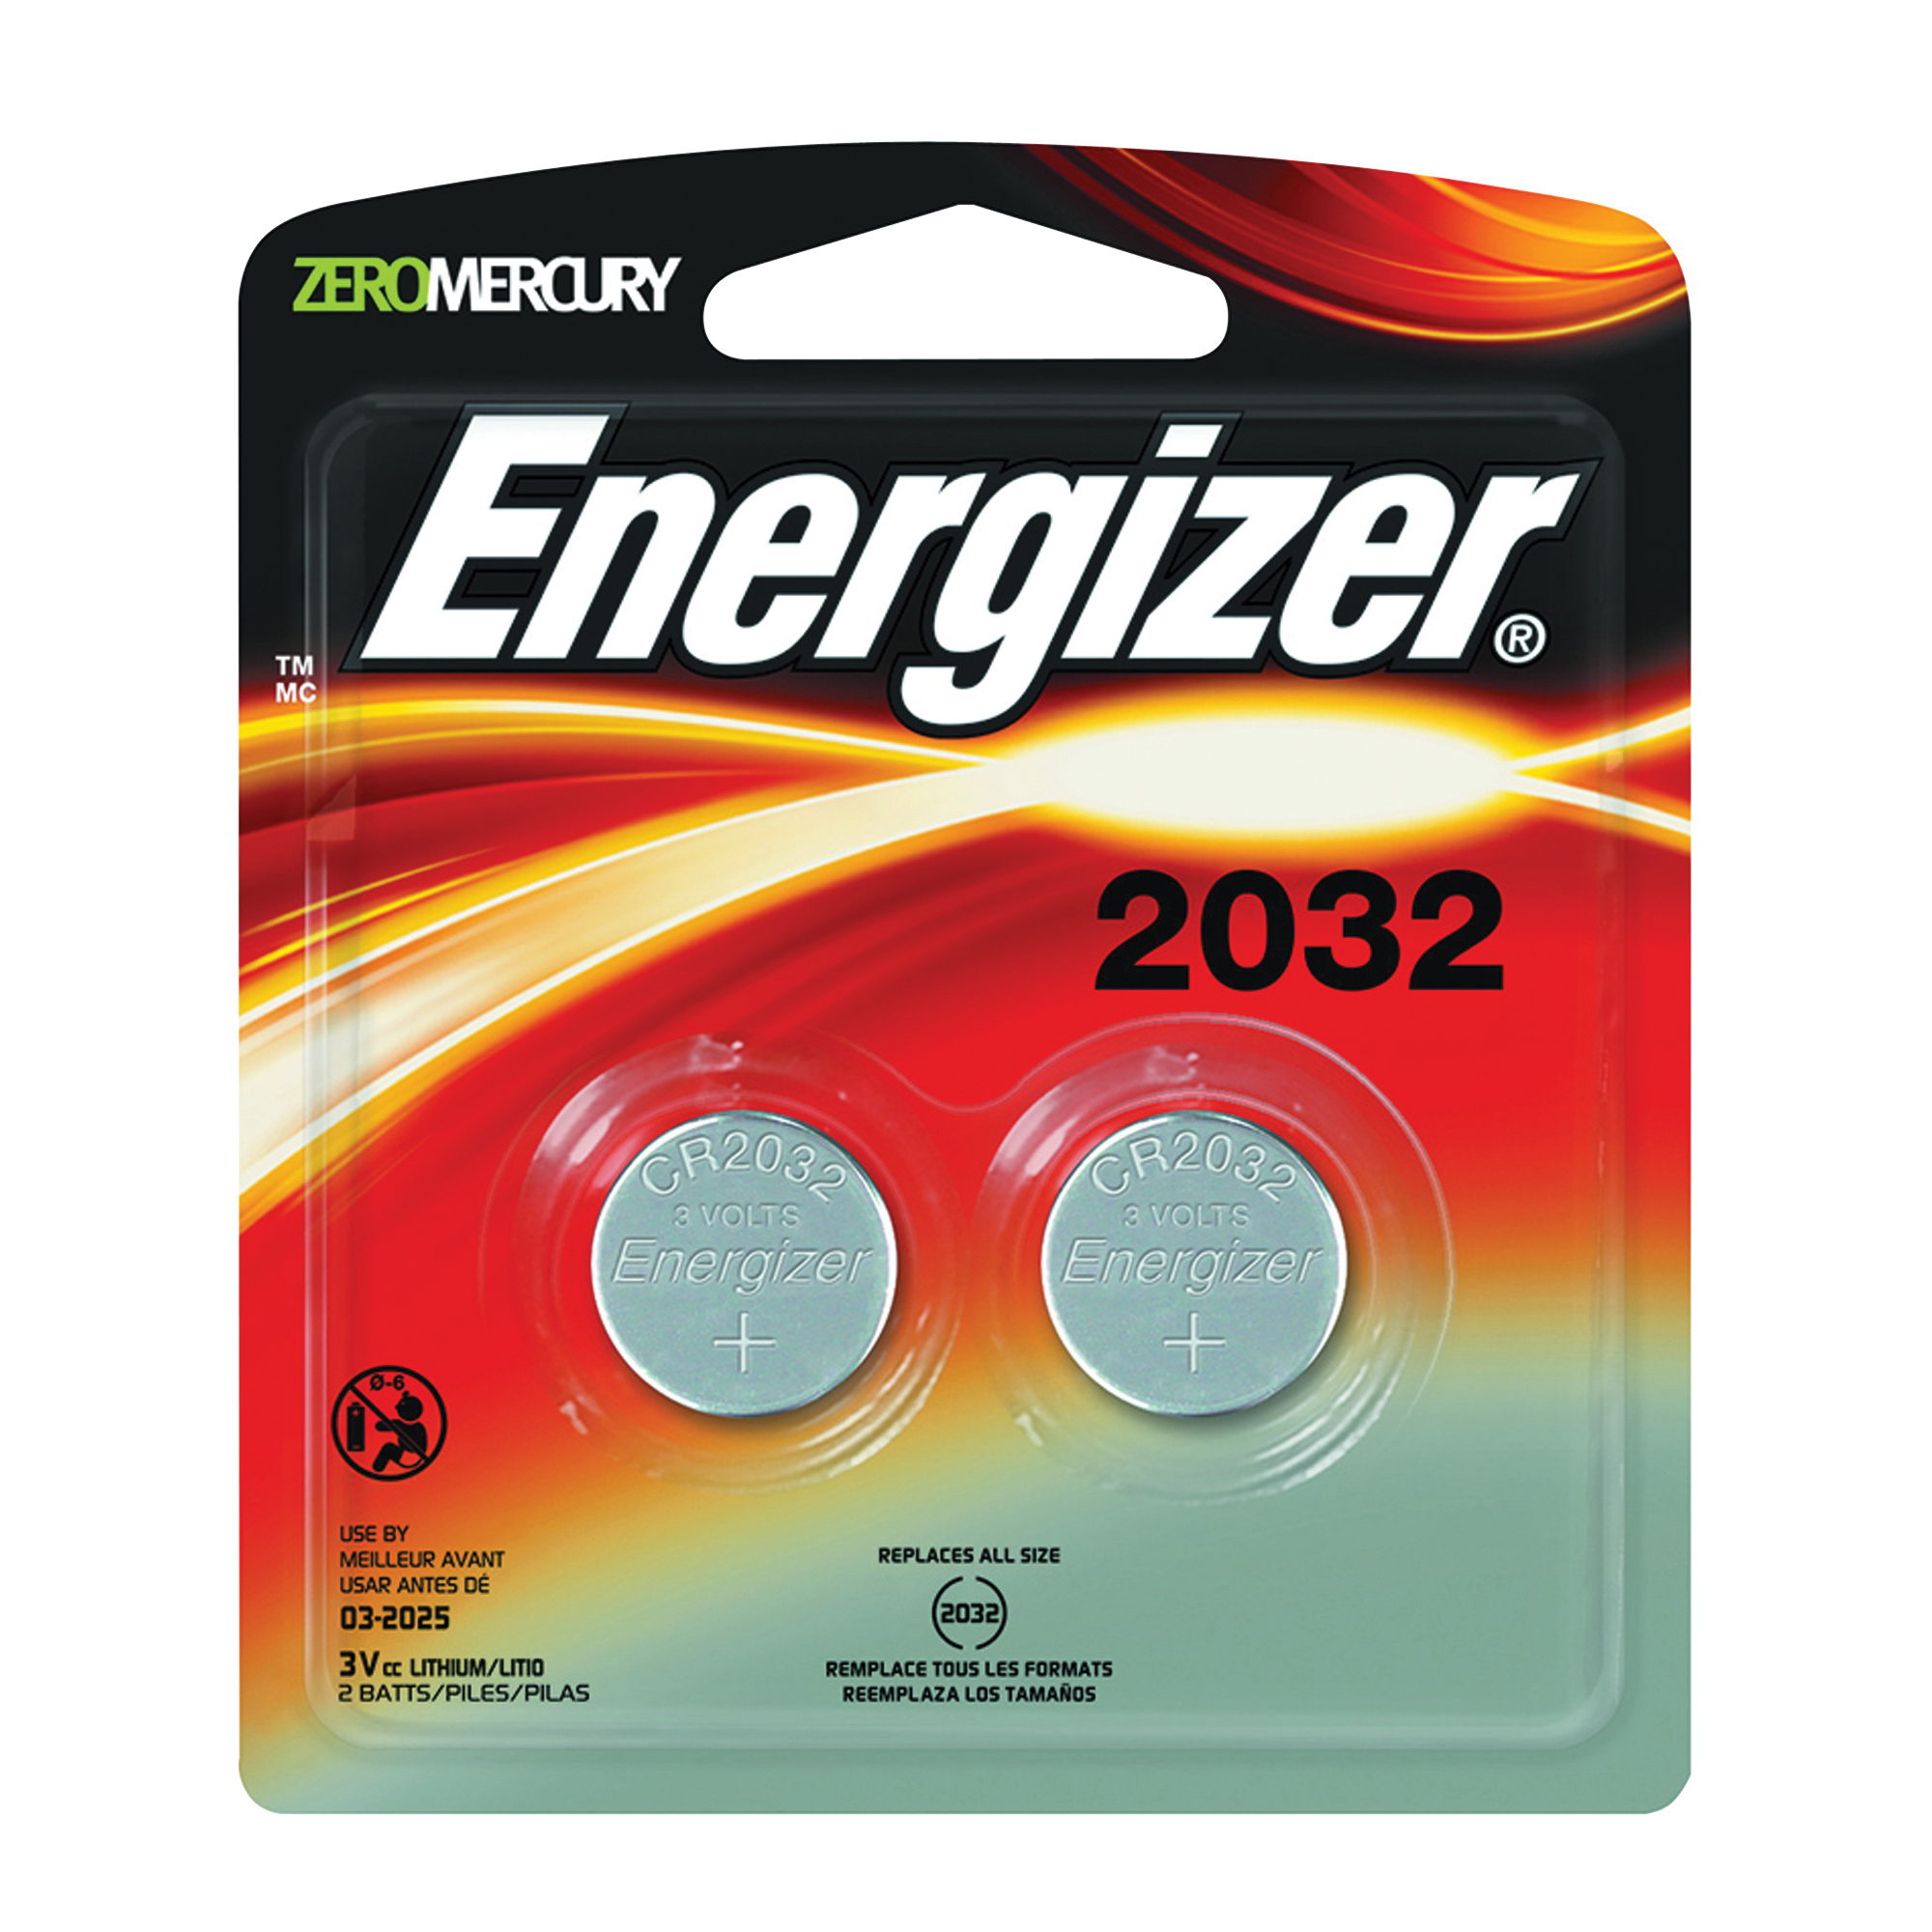 Picture of Energizer 2032BP-2 Coin Cell Battery, 3 V Battery, 235 mAh, CR2032 Battery, Lithium, Manganese Dioxide